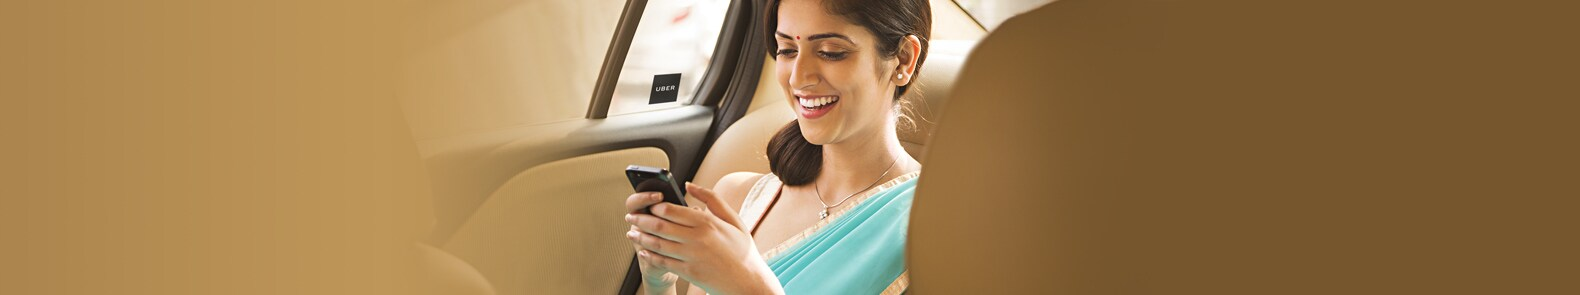 Get 20% cashback* on Uber rides and go further.